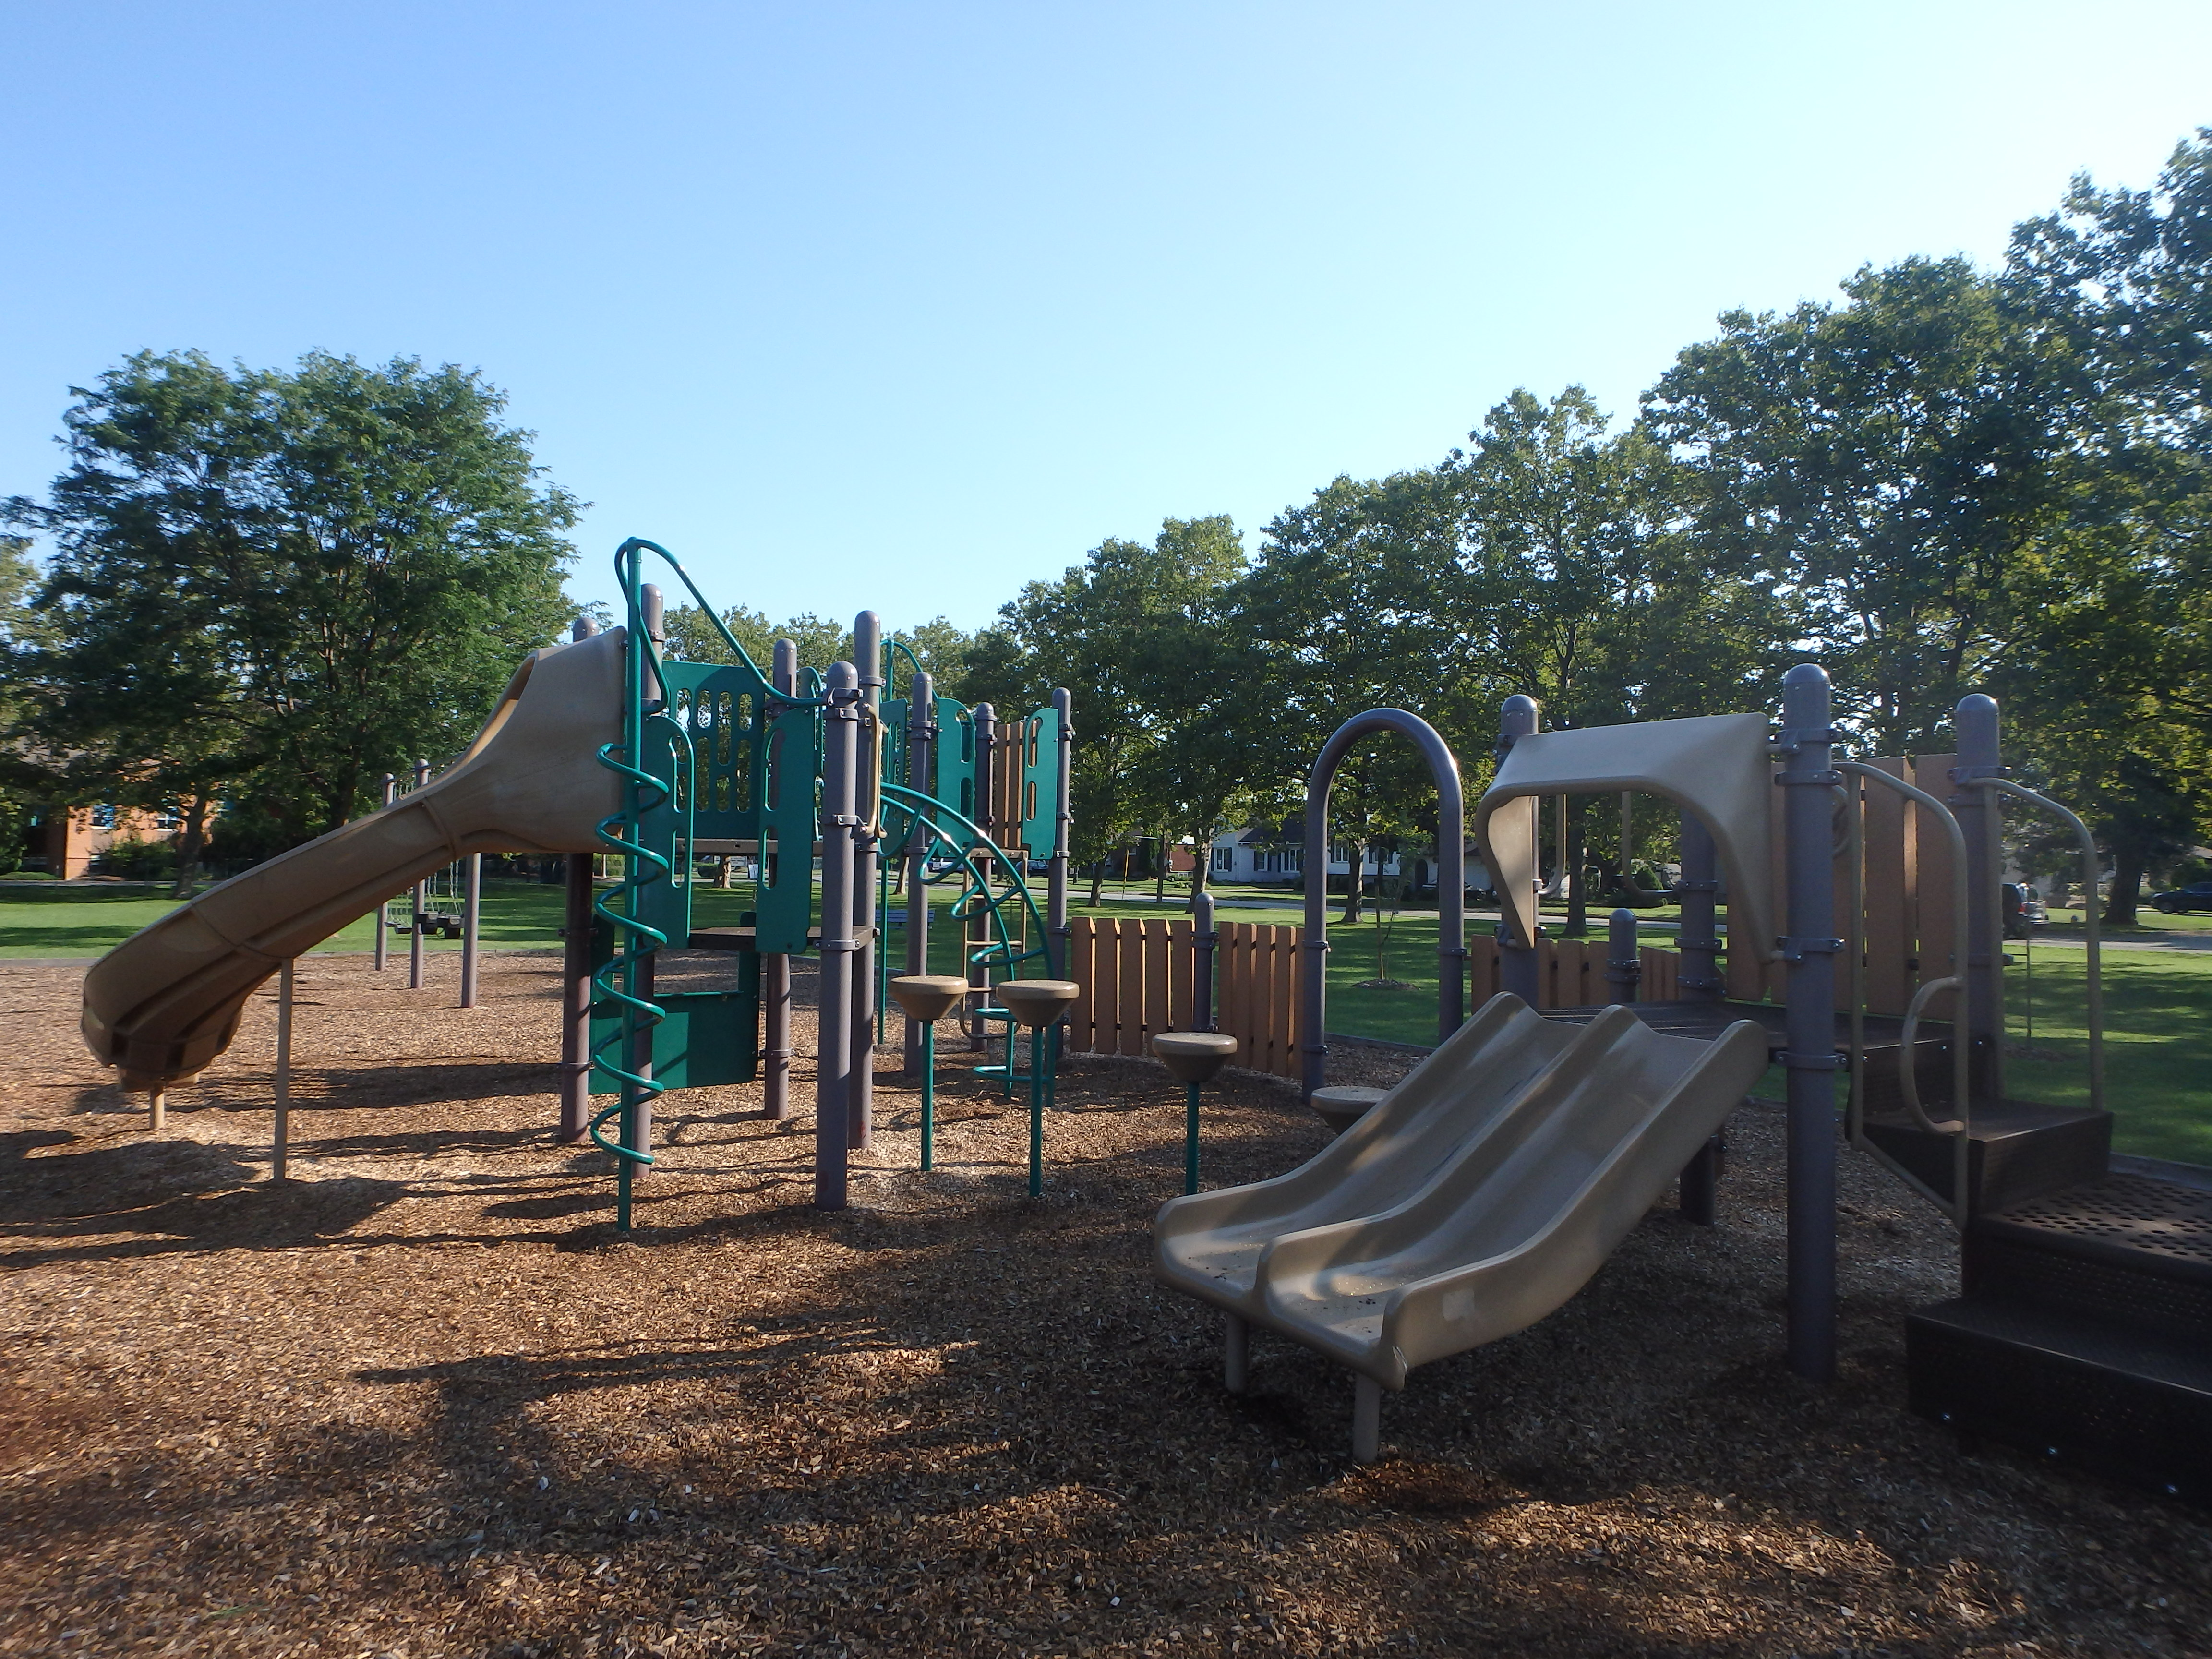 G:\!PARKS CEMETERIES FORESTRY AND HORTICULTURE\Parks-Inventory\Play-Equipment\Grantham Avenue Park\Grantham Avenue 1.JPG